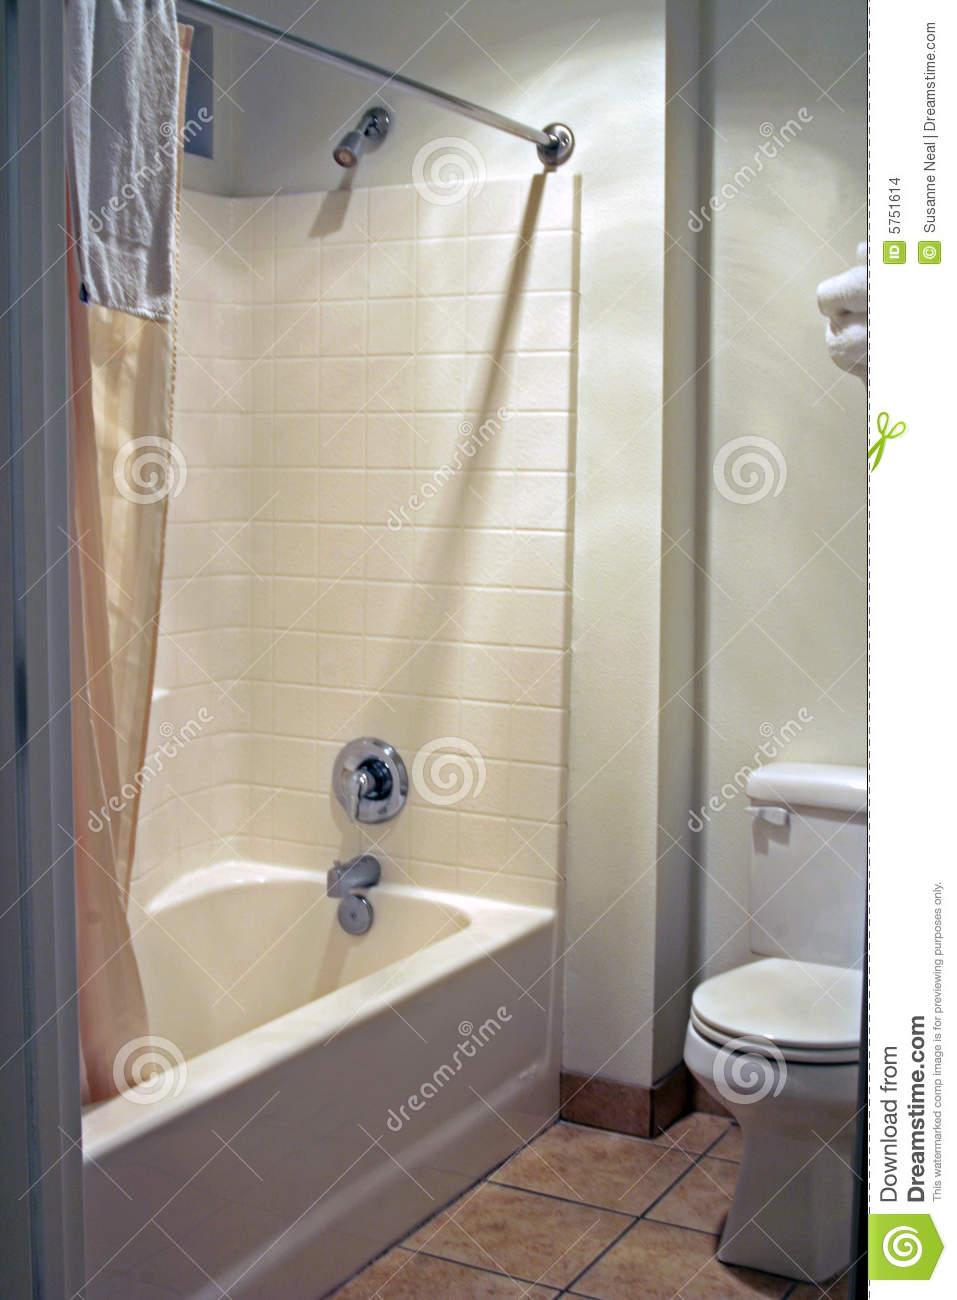 Clean and simple bathroom stock photo. Image of clean - 5751614